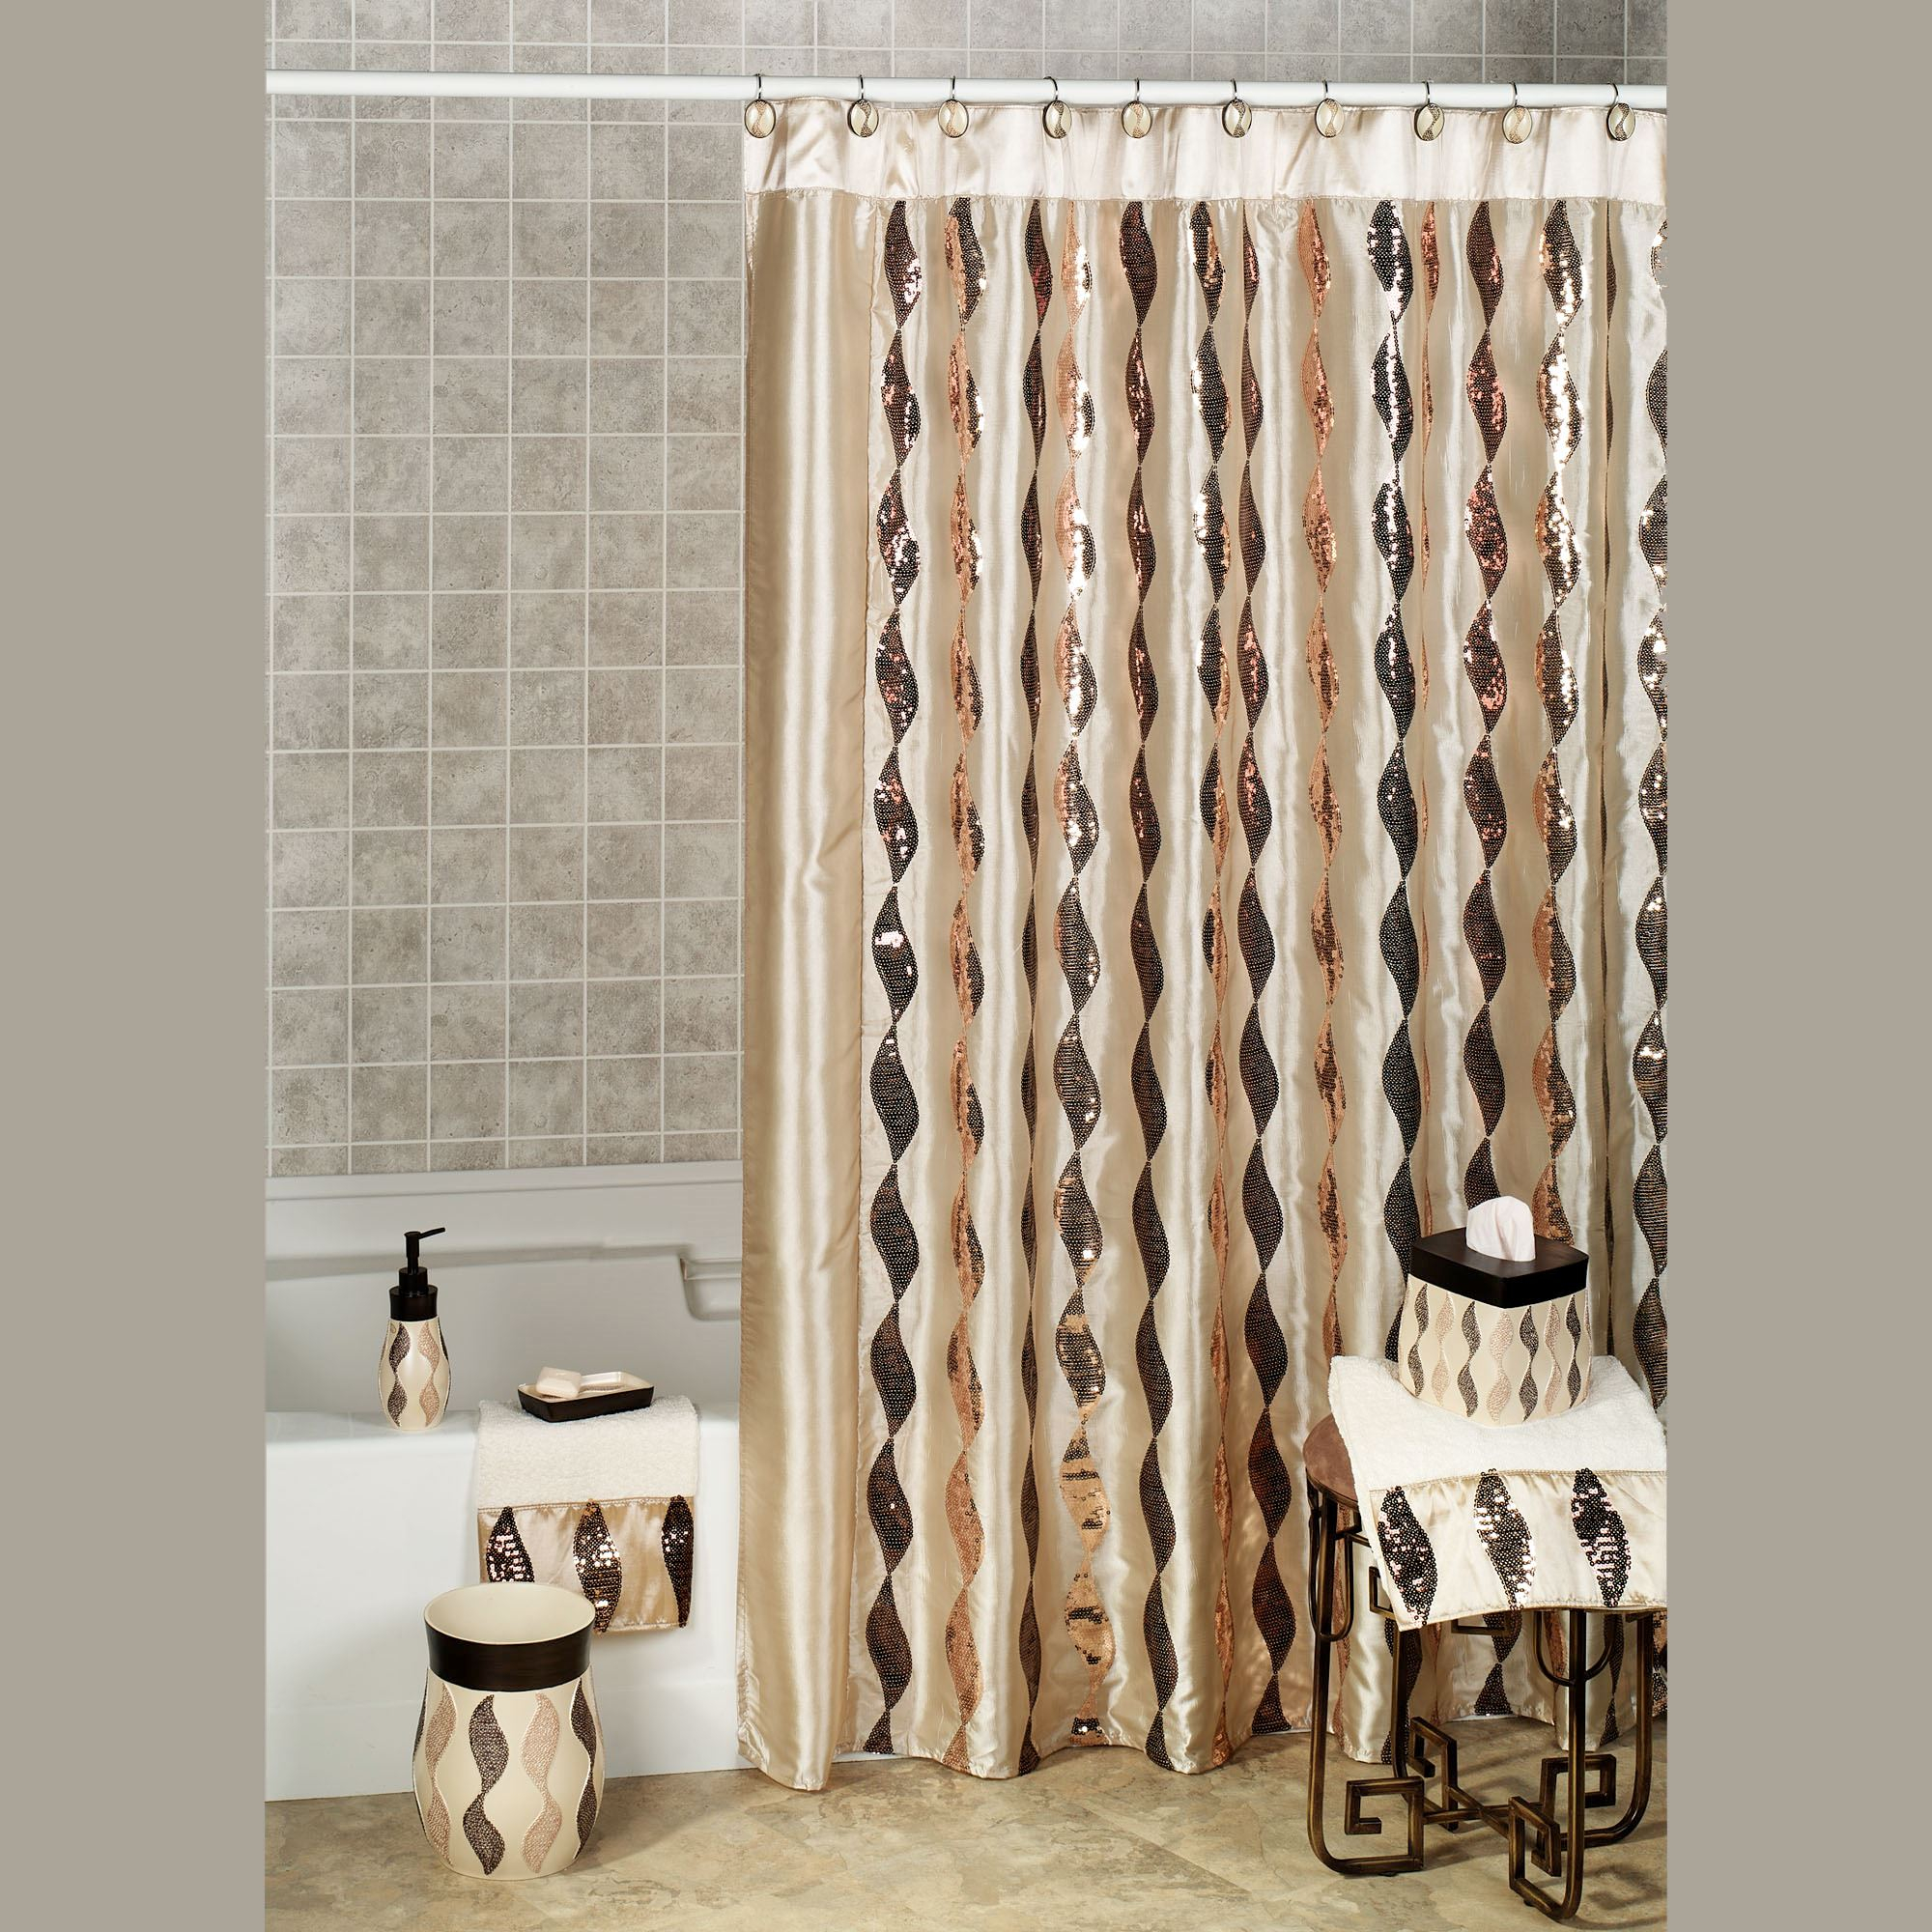 Shimmer Sequin Ribbon Shower Curtain pertaining to proportions 2000 X 2000